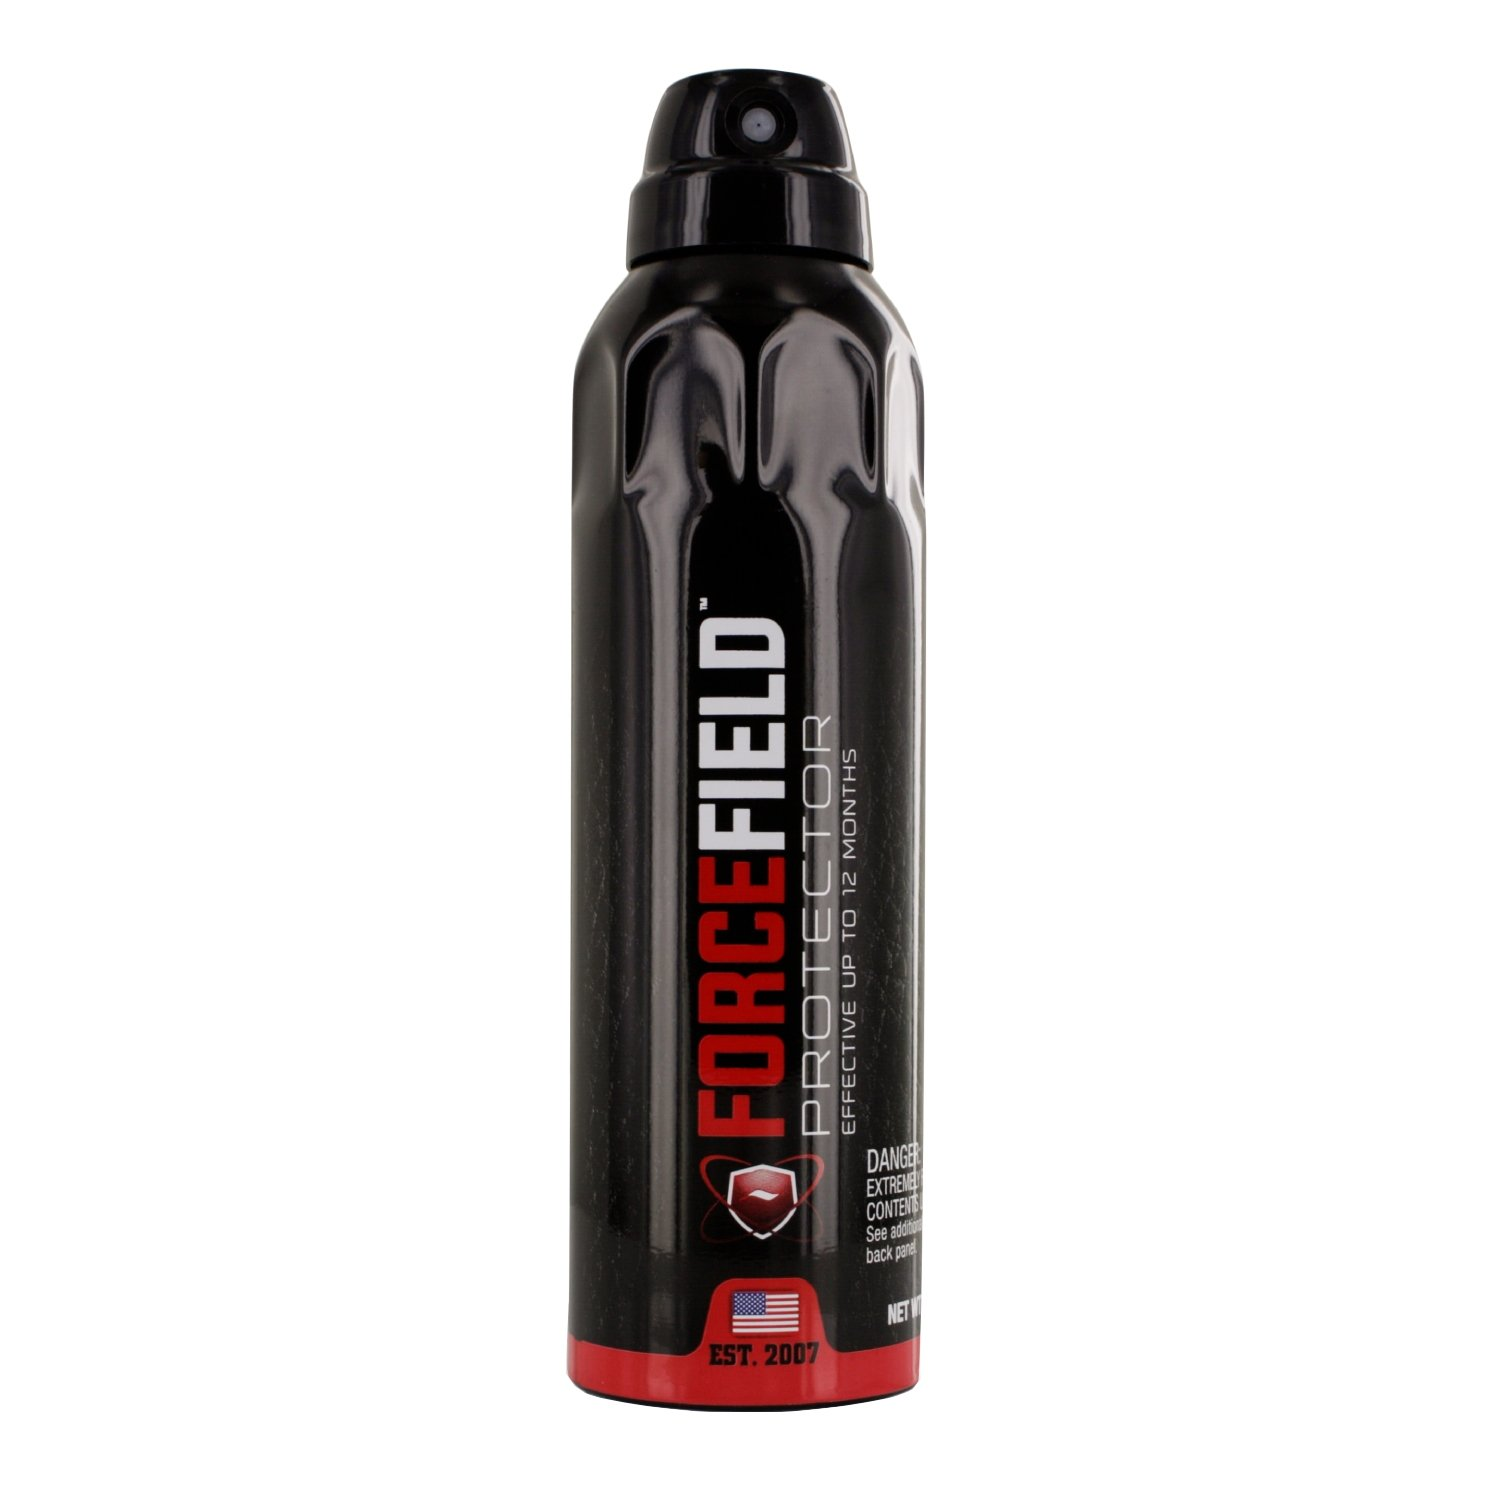 ForceField Protector Waterproof Resistant Protectant